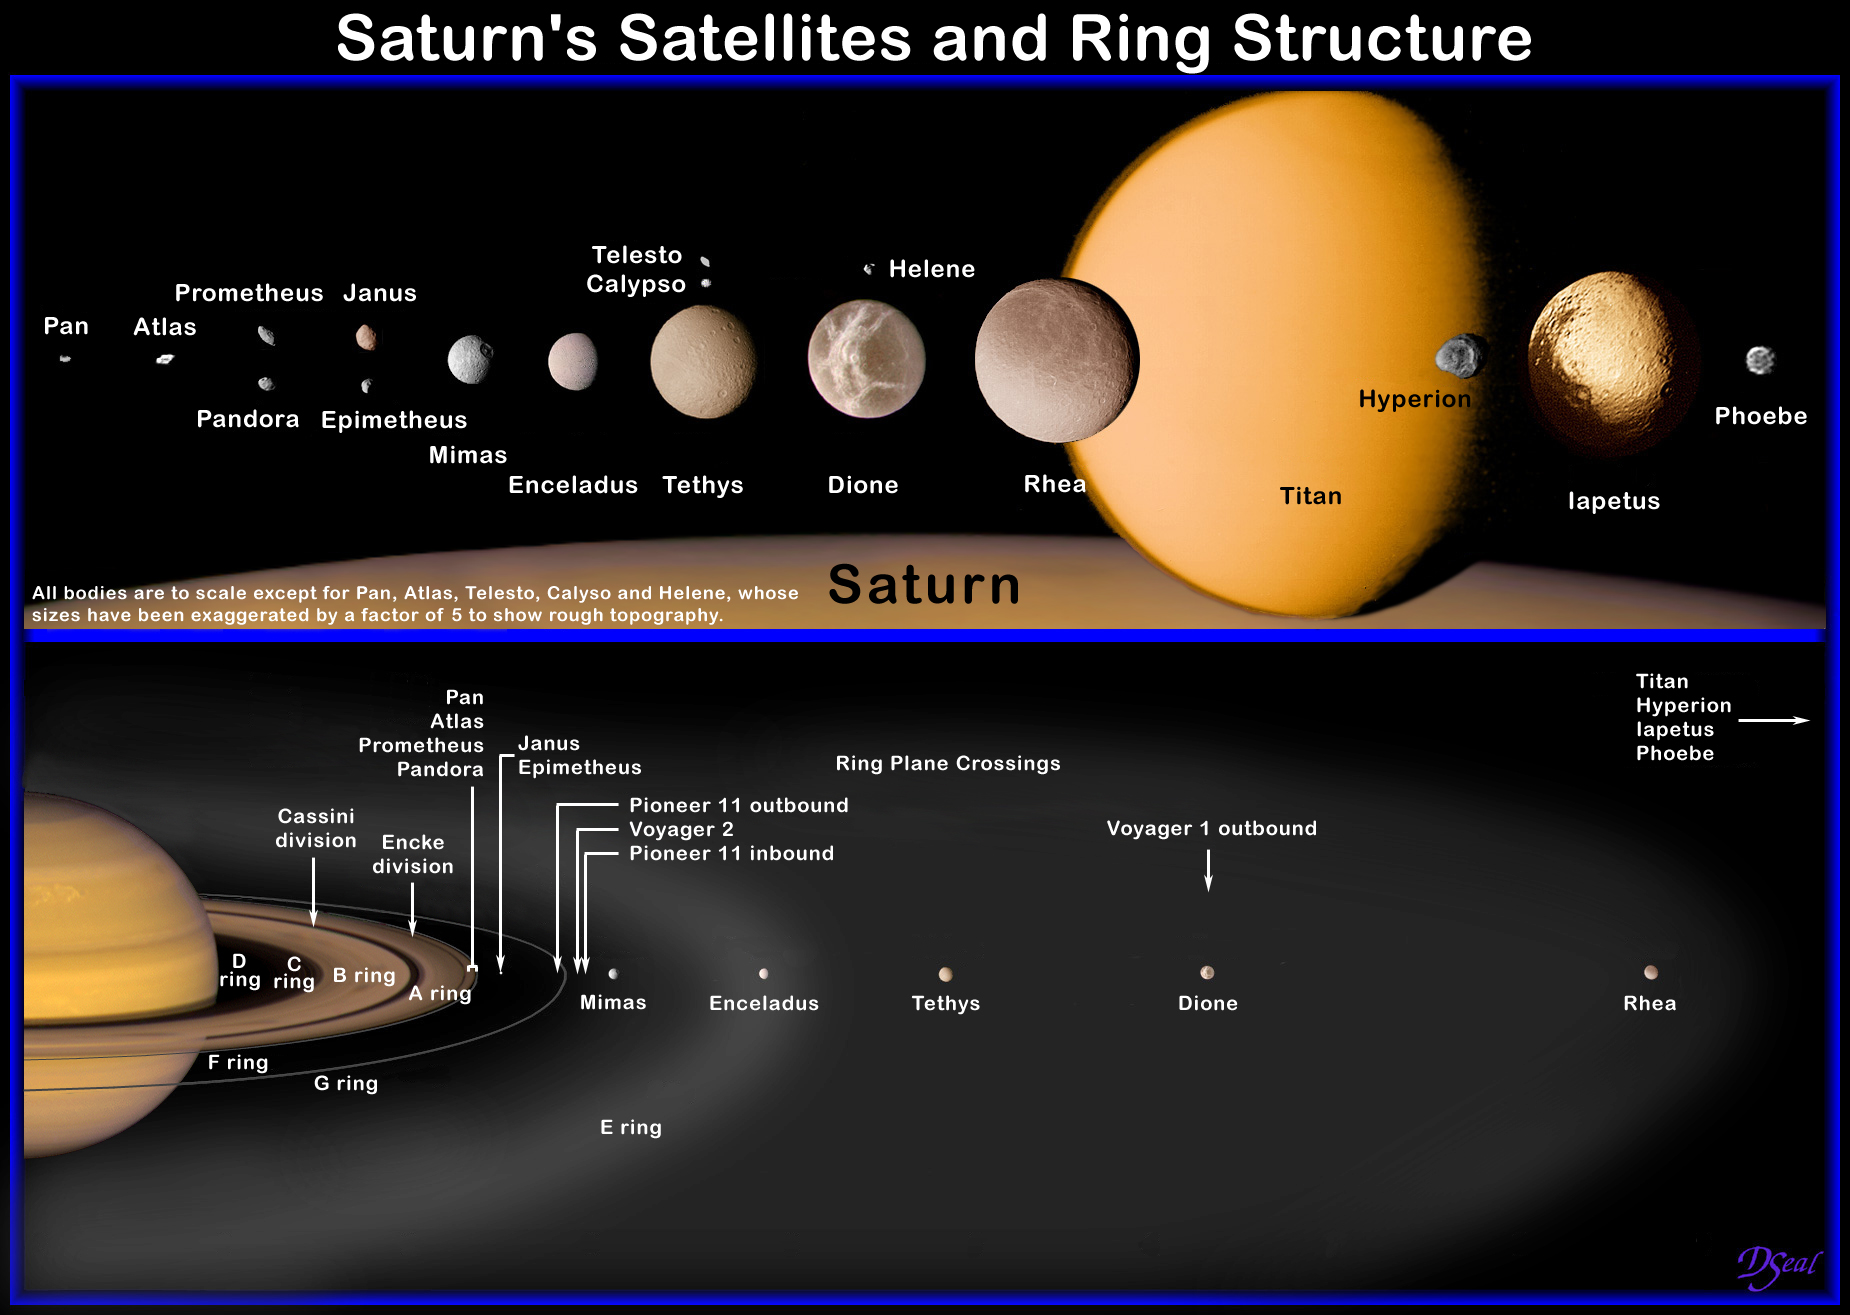 Saturn Satellites, Rings